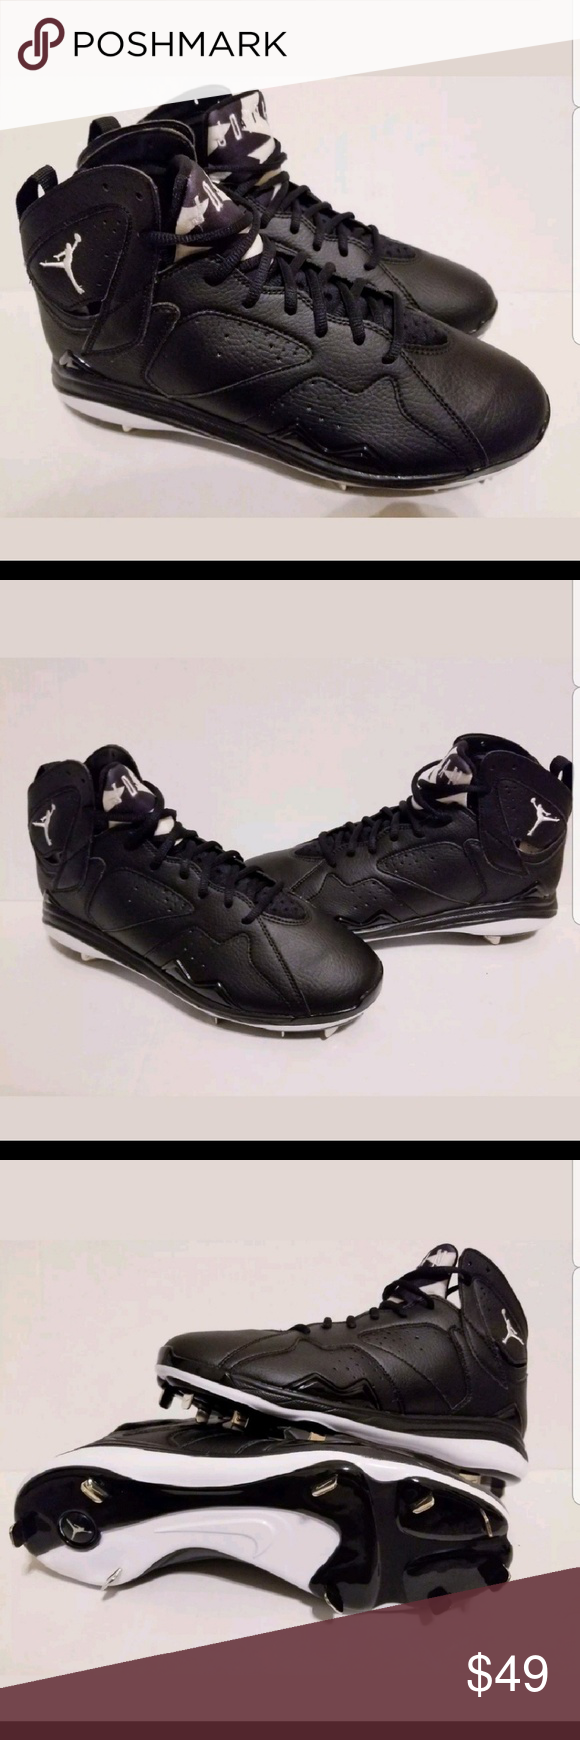 1d0e270ba102cb Nike Air Jordan 7 VII Retro Metal Baseball Cleats Nike Air Jordan 7 VII  Retro Metal